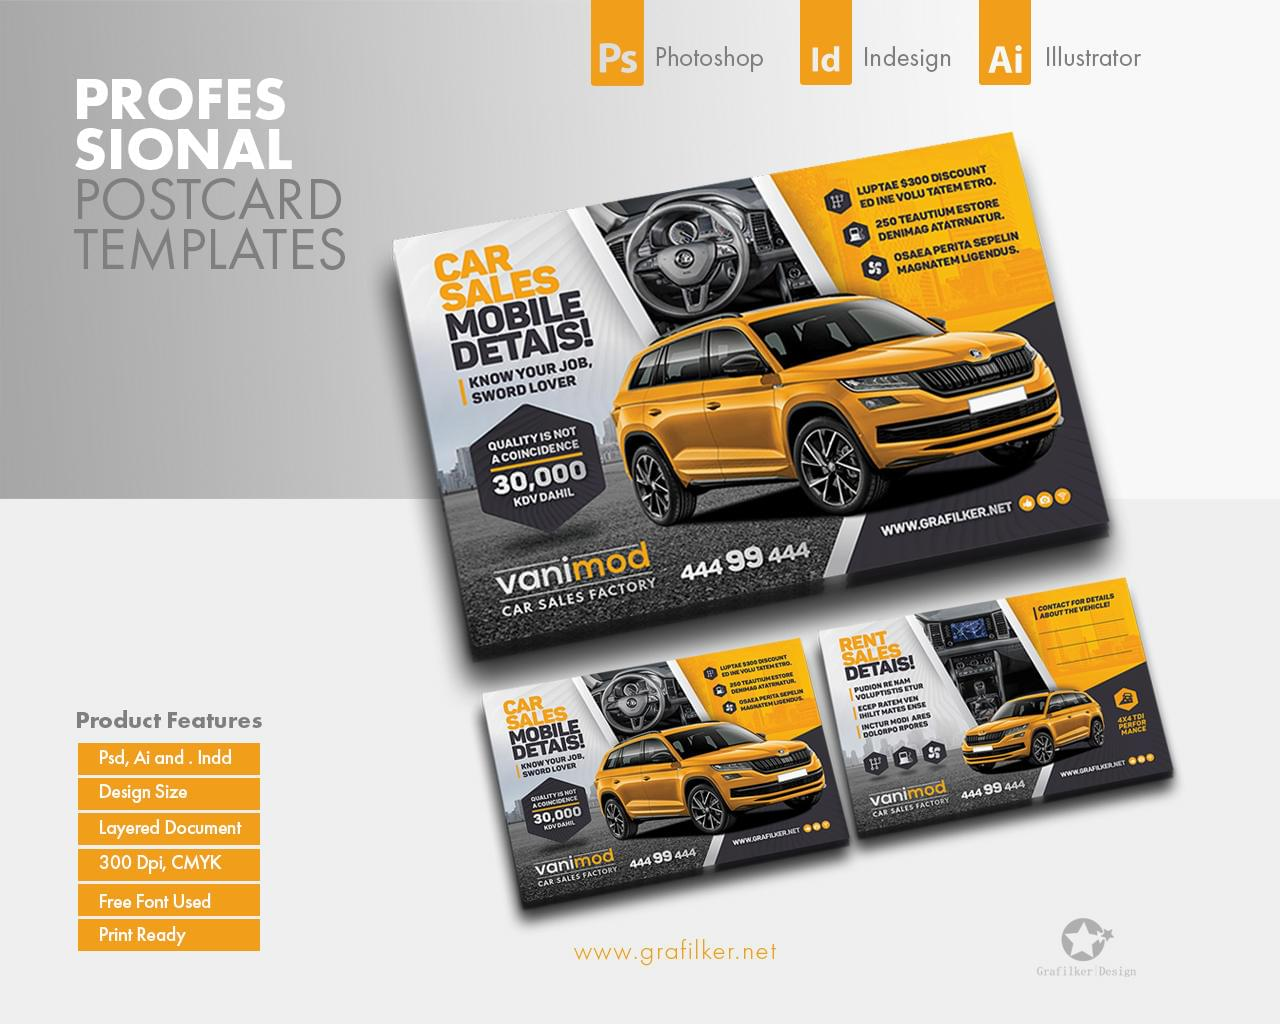 Professional Postcard Templates by grafilker - 117382